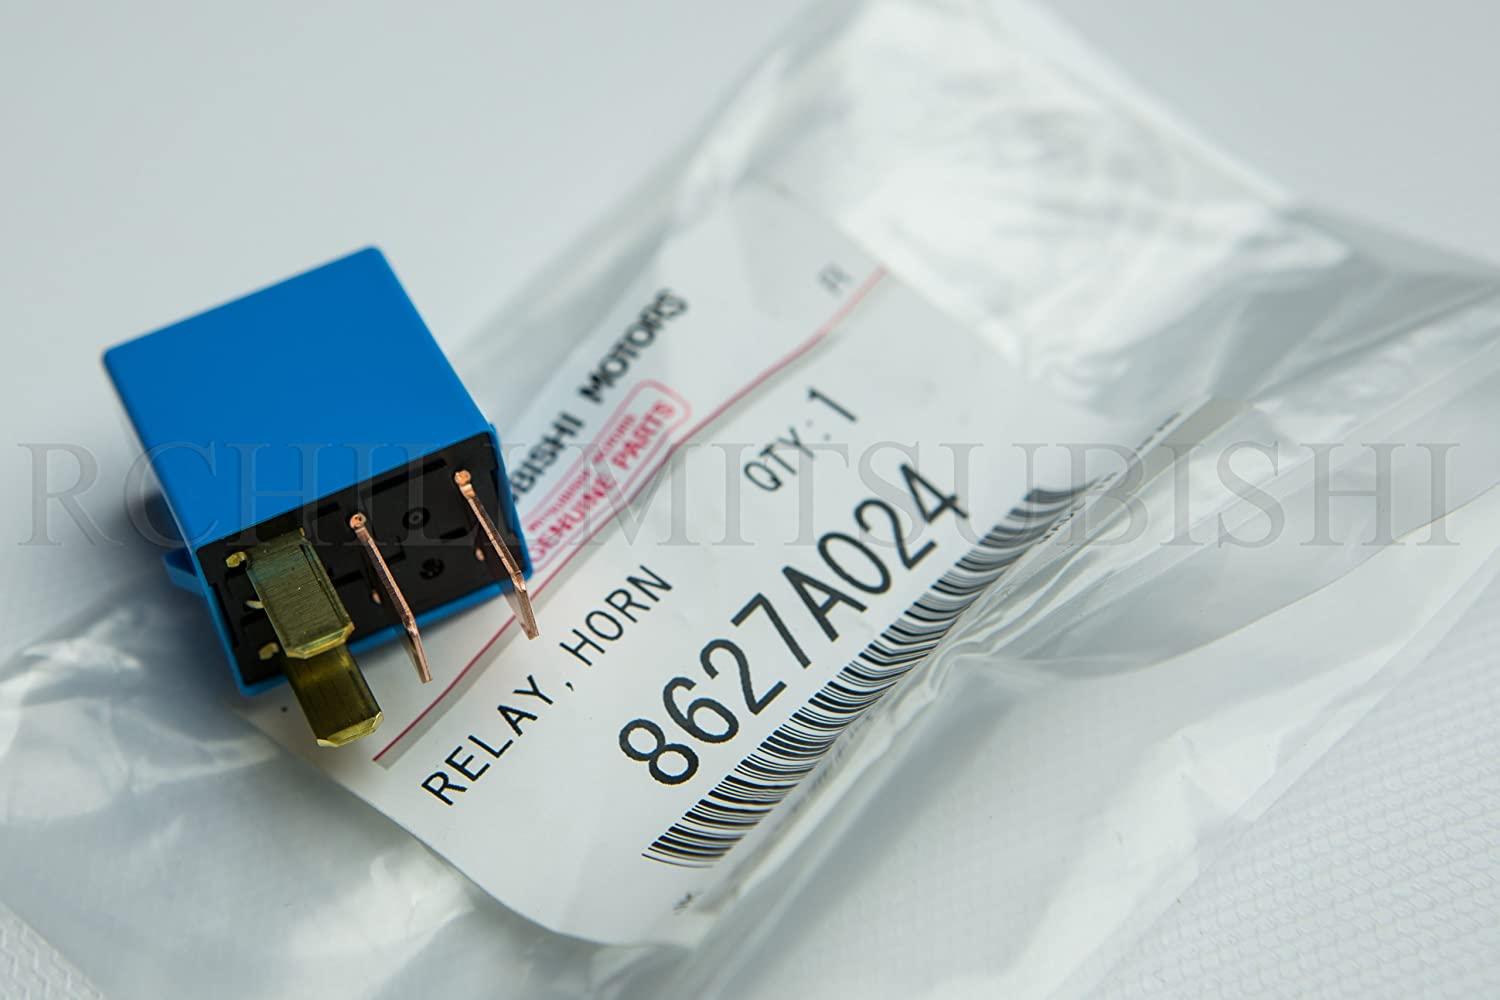 8627A024 MITSUBISHI GENUINE OEM FACTORY ORIGINAL RELAY